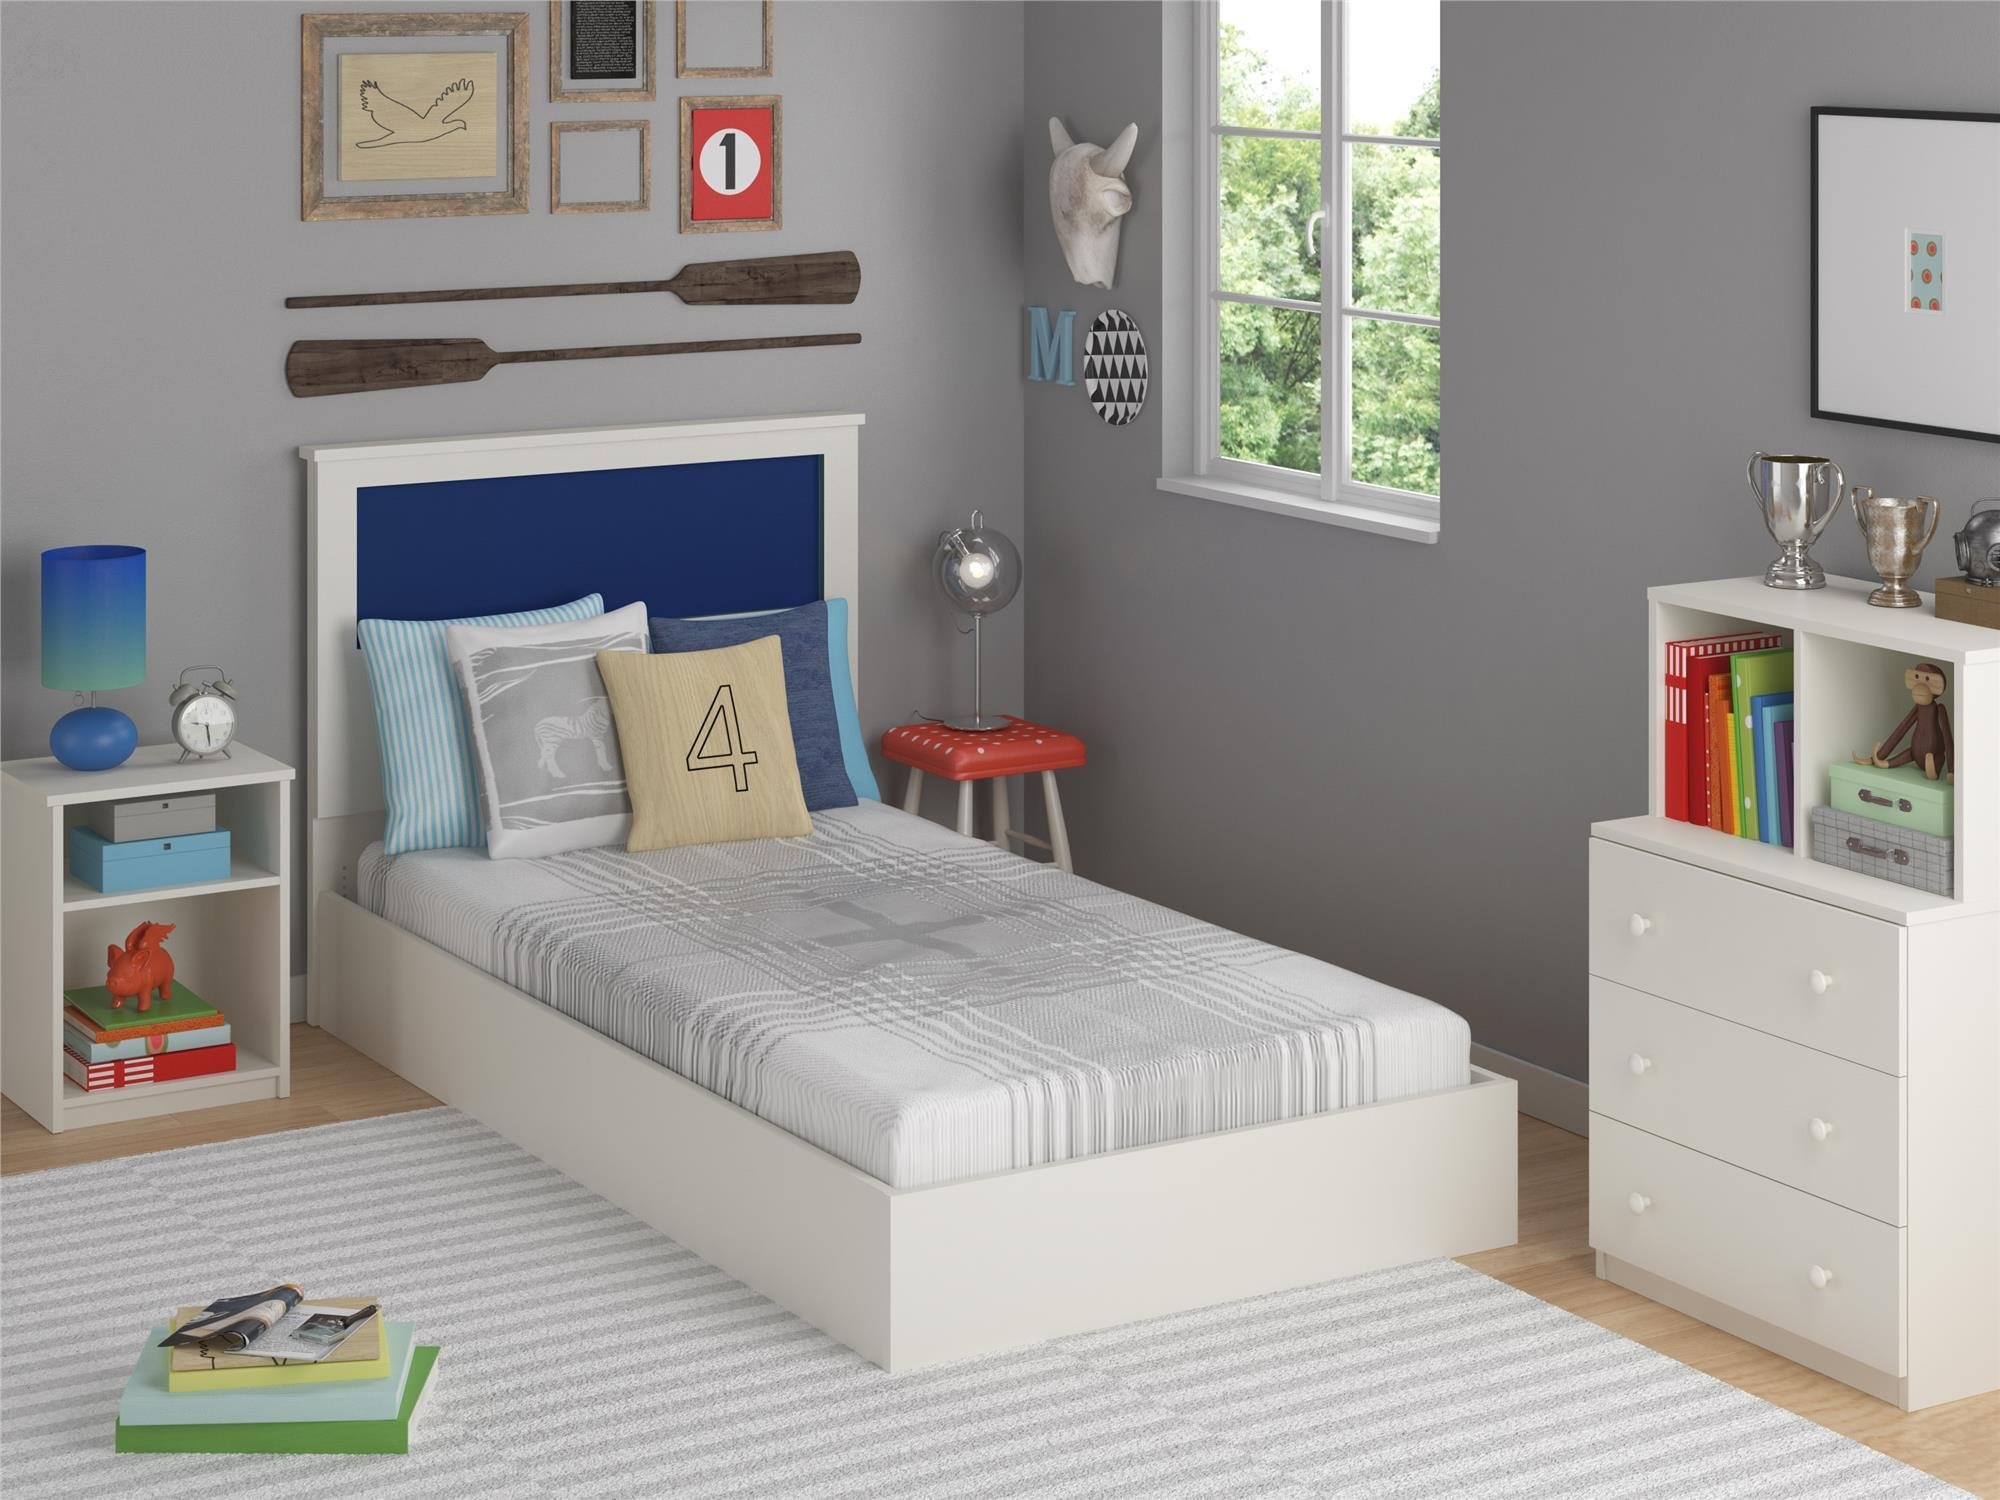 Ameriwood Home Skyler 3 Drawer Dresser with Cubbies, White by Ameriwood Home (Image #5)